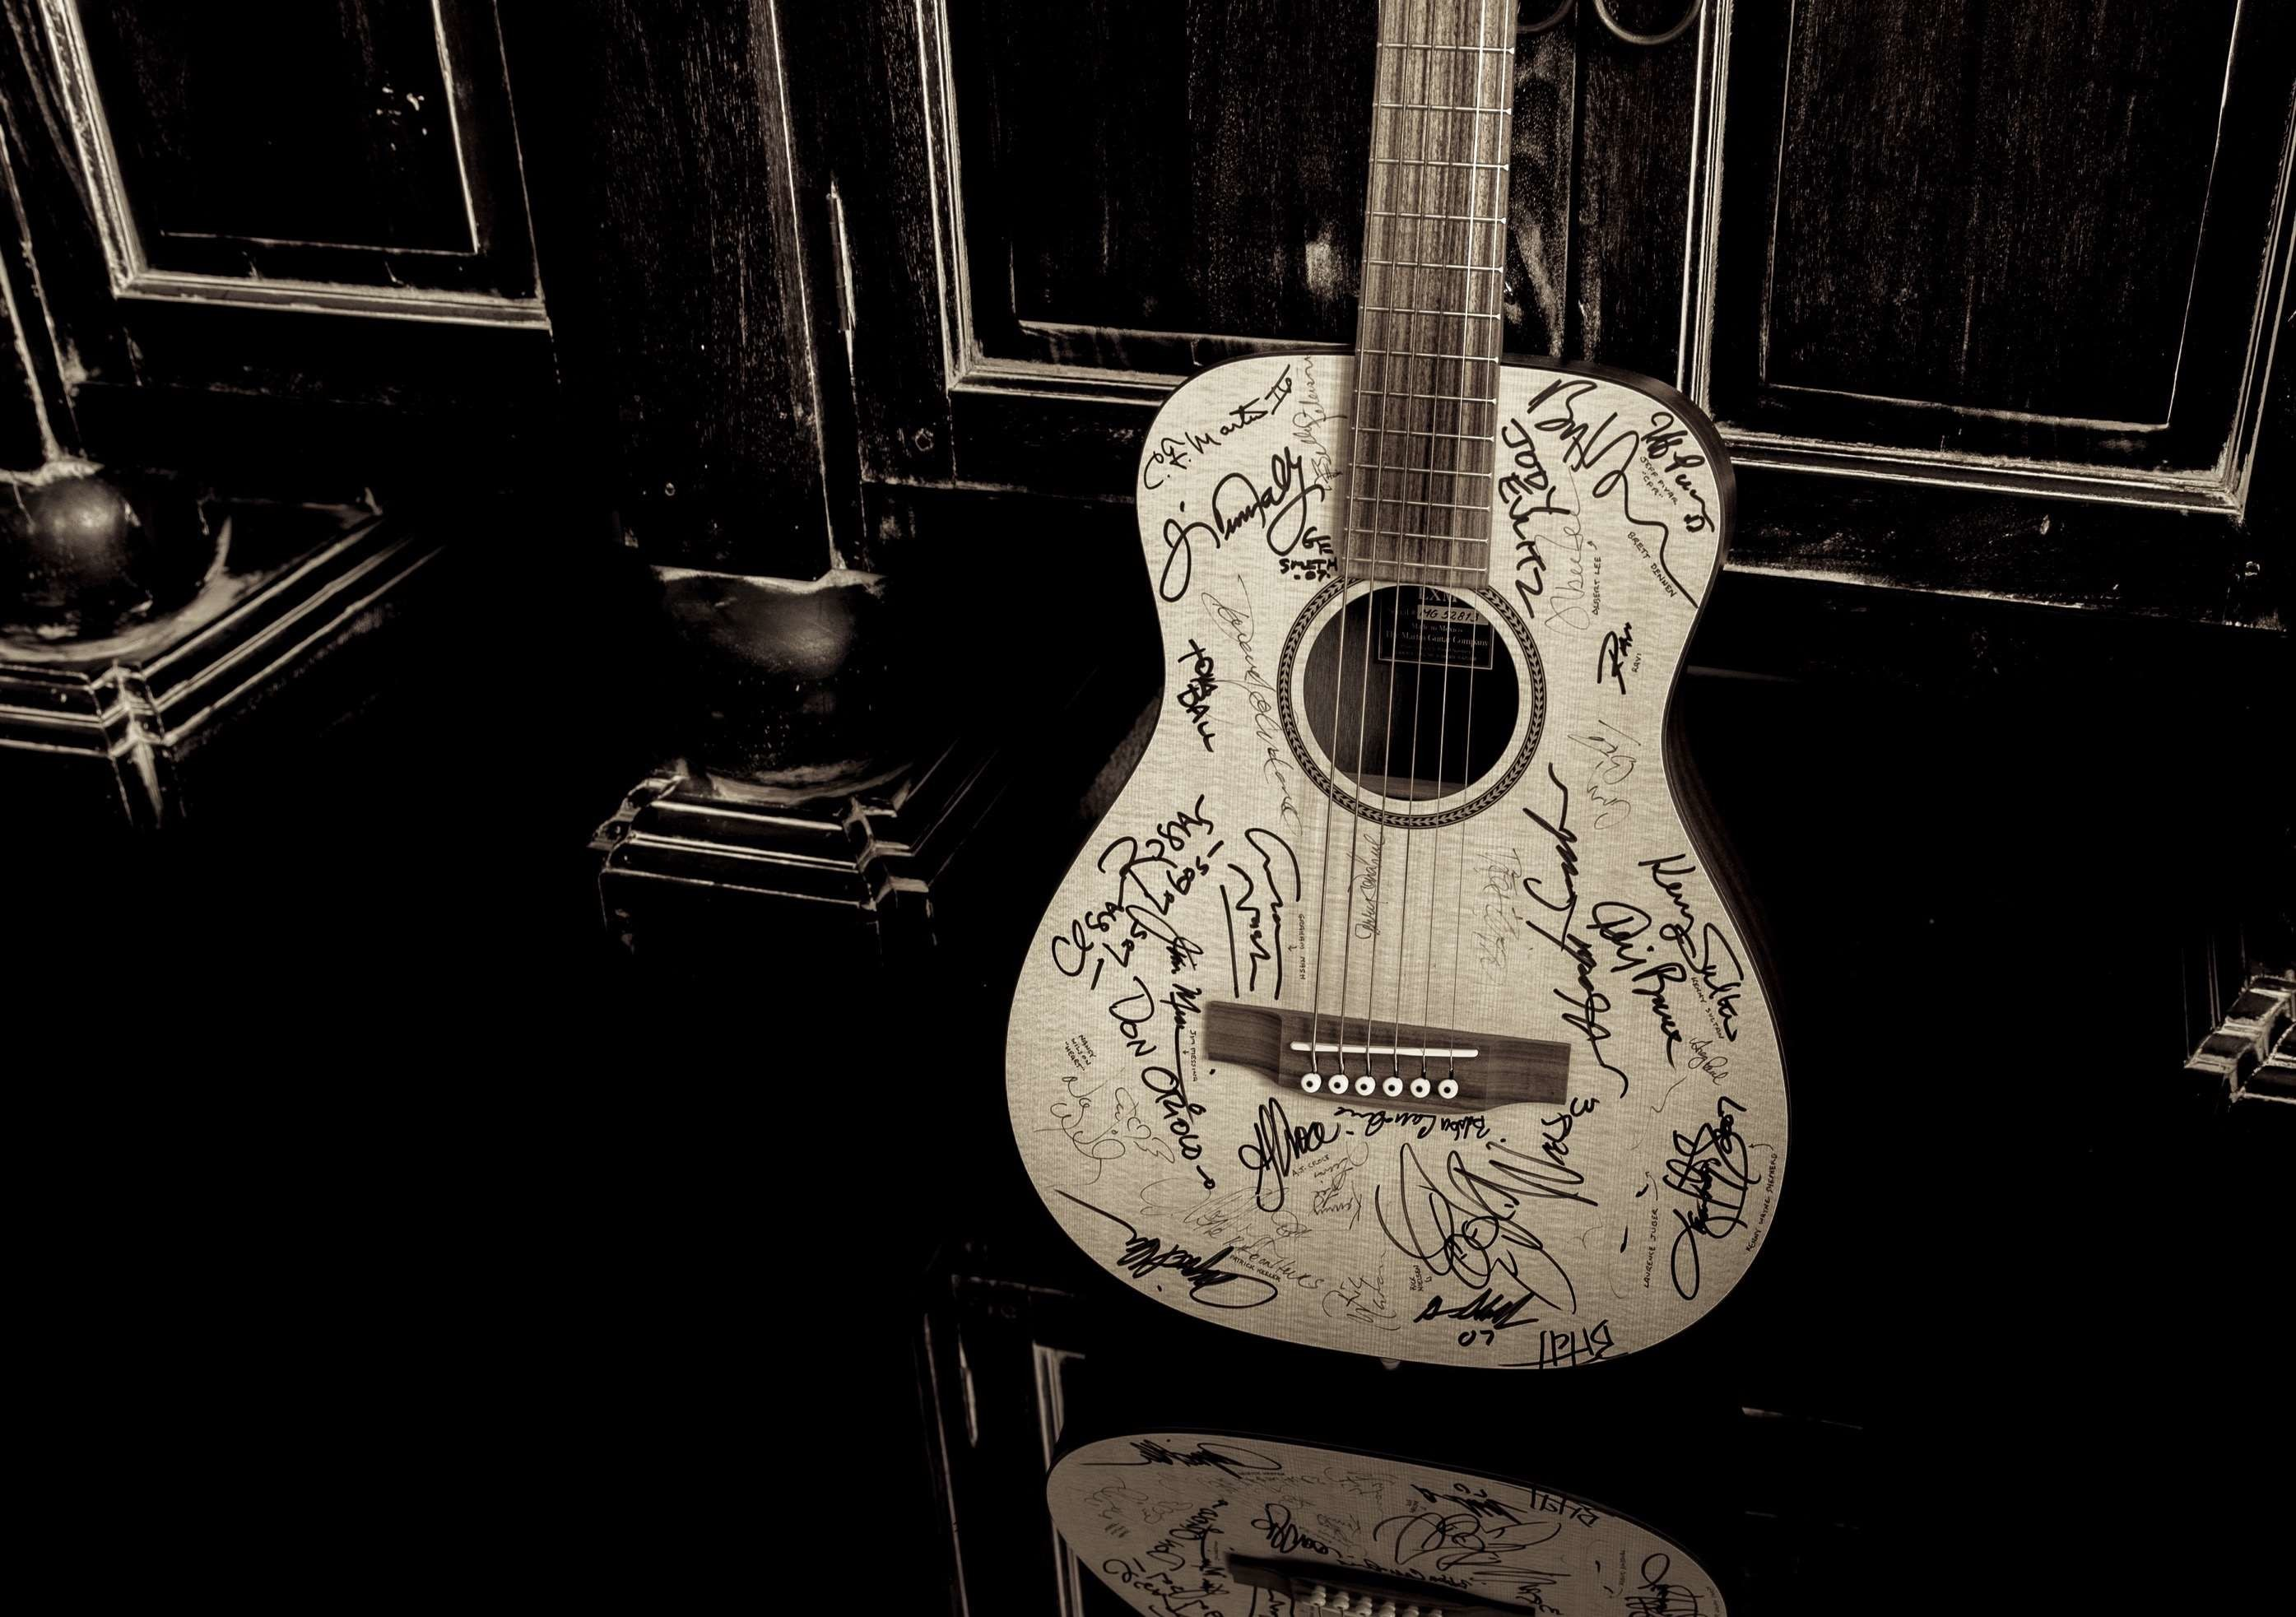 2790x1965 acoustic guitar, autograph, dark, martin guitar, signature, wood wallpaper  and background